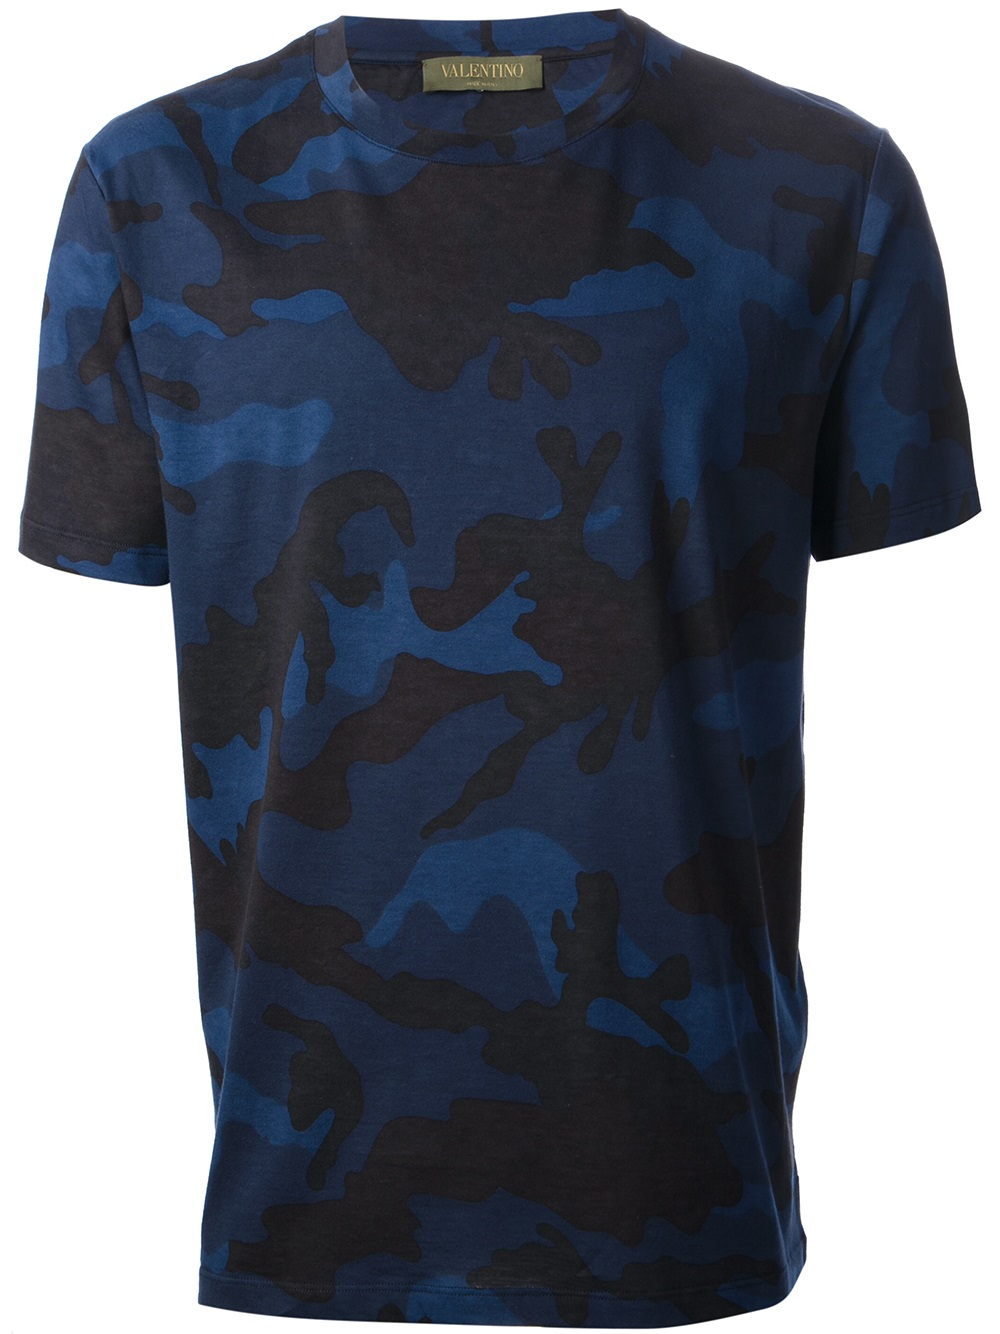 Valentino Camouflage T Shirt In Blue For Men Lyst